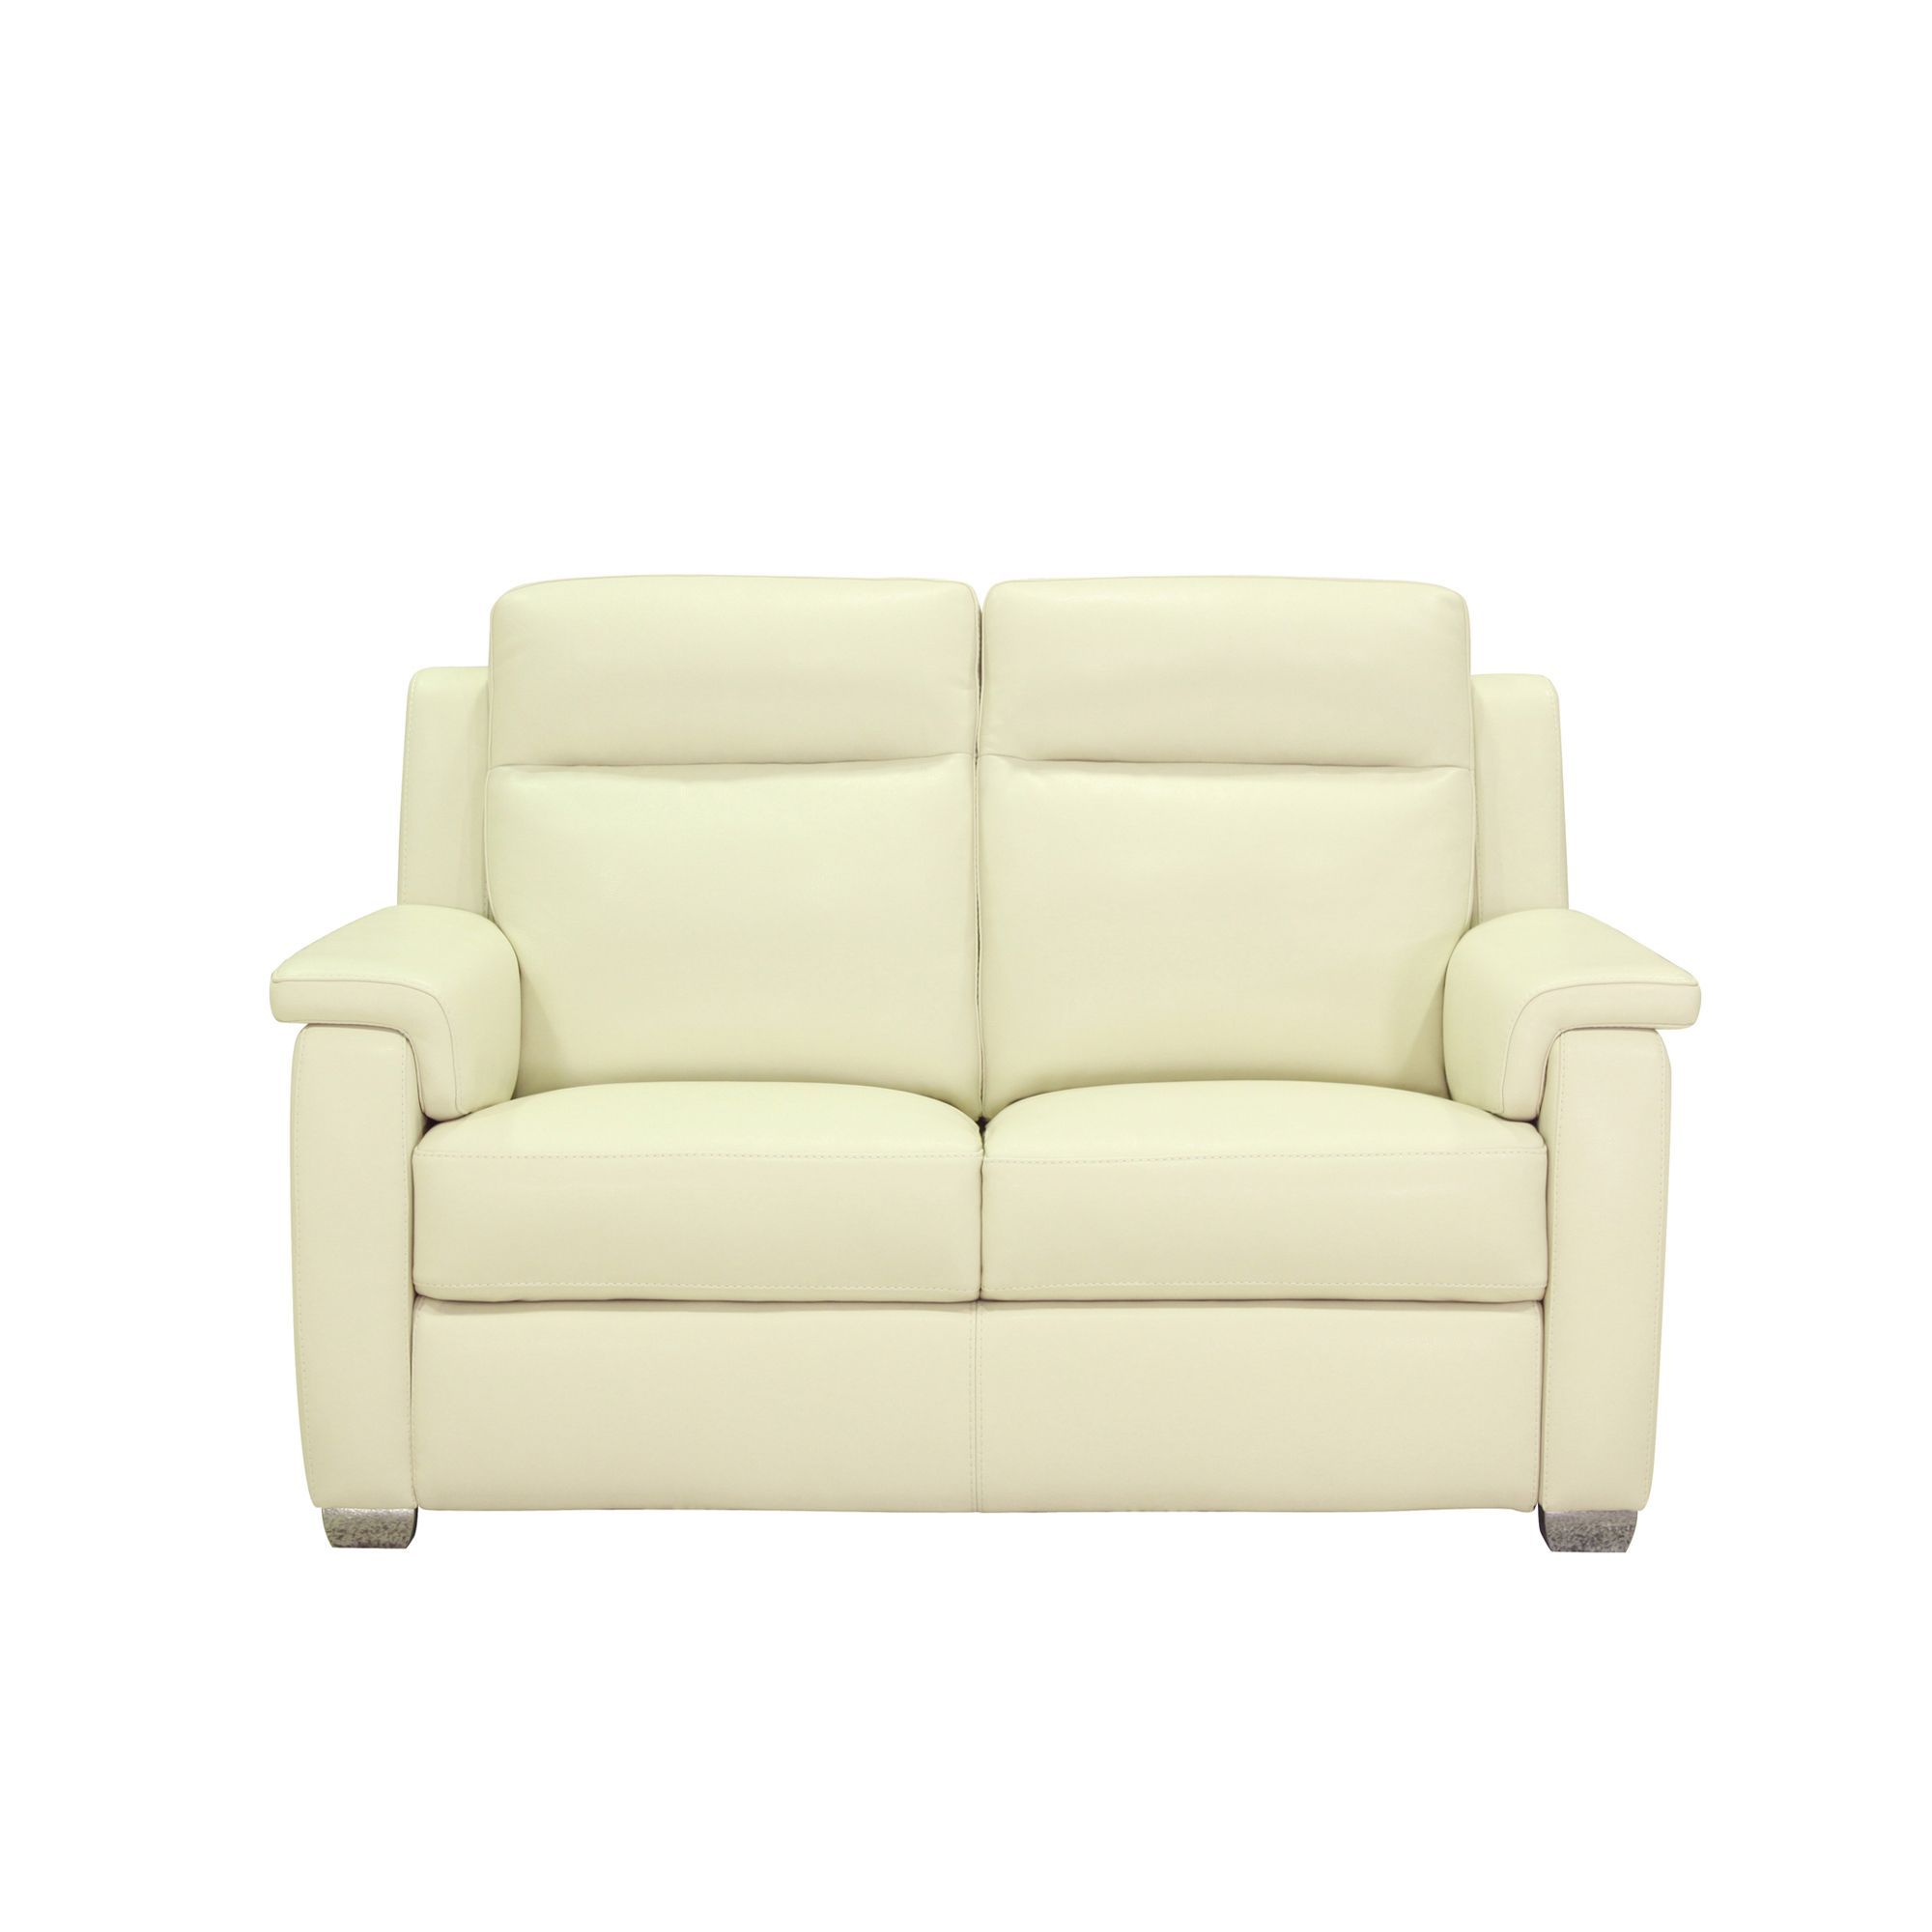 Cookes Collection Victoria 2 Seater Sofa Living